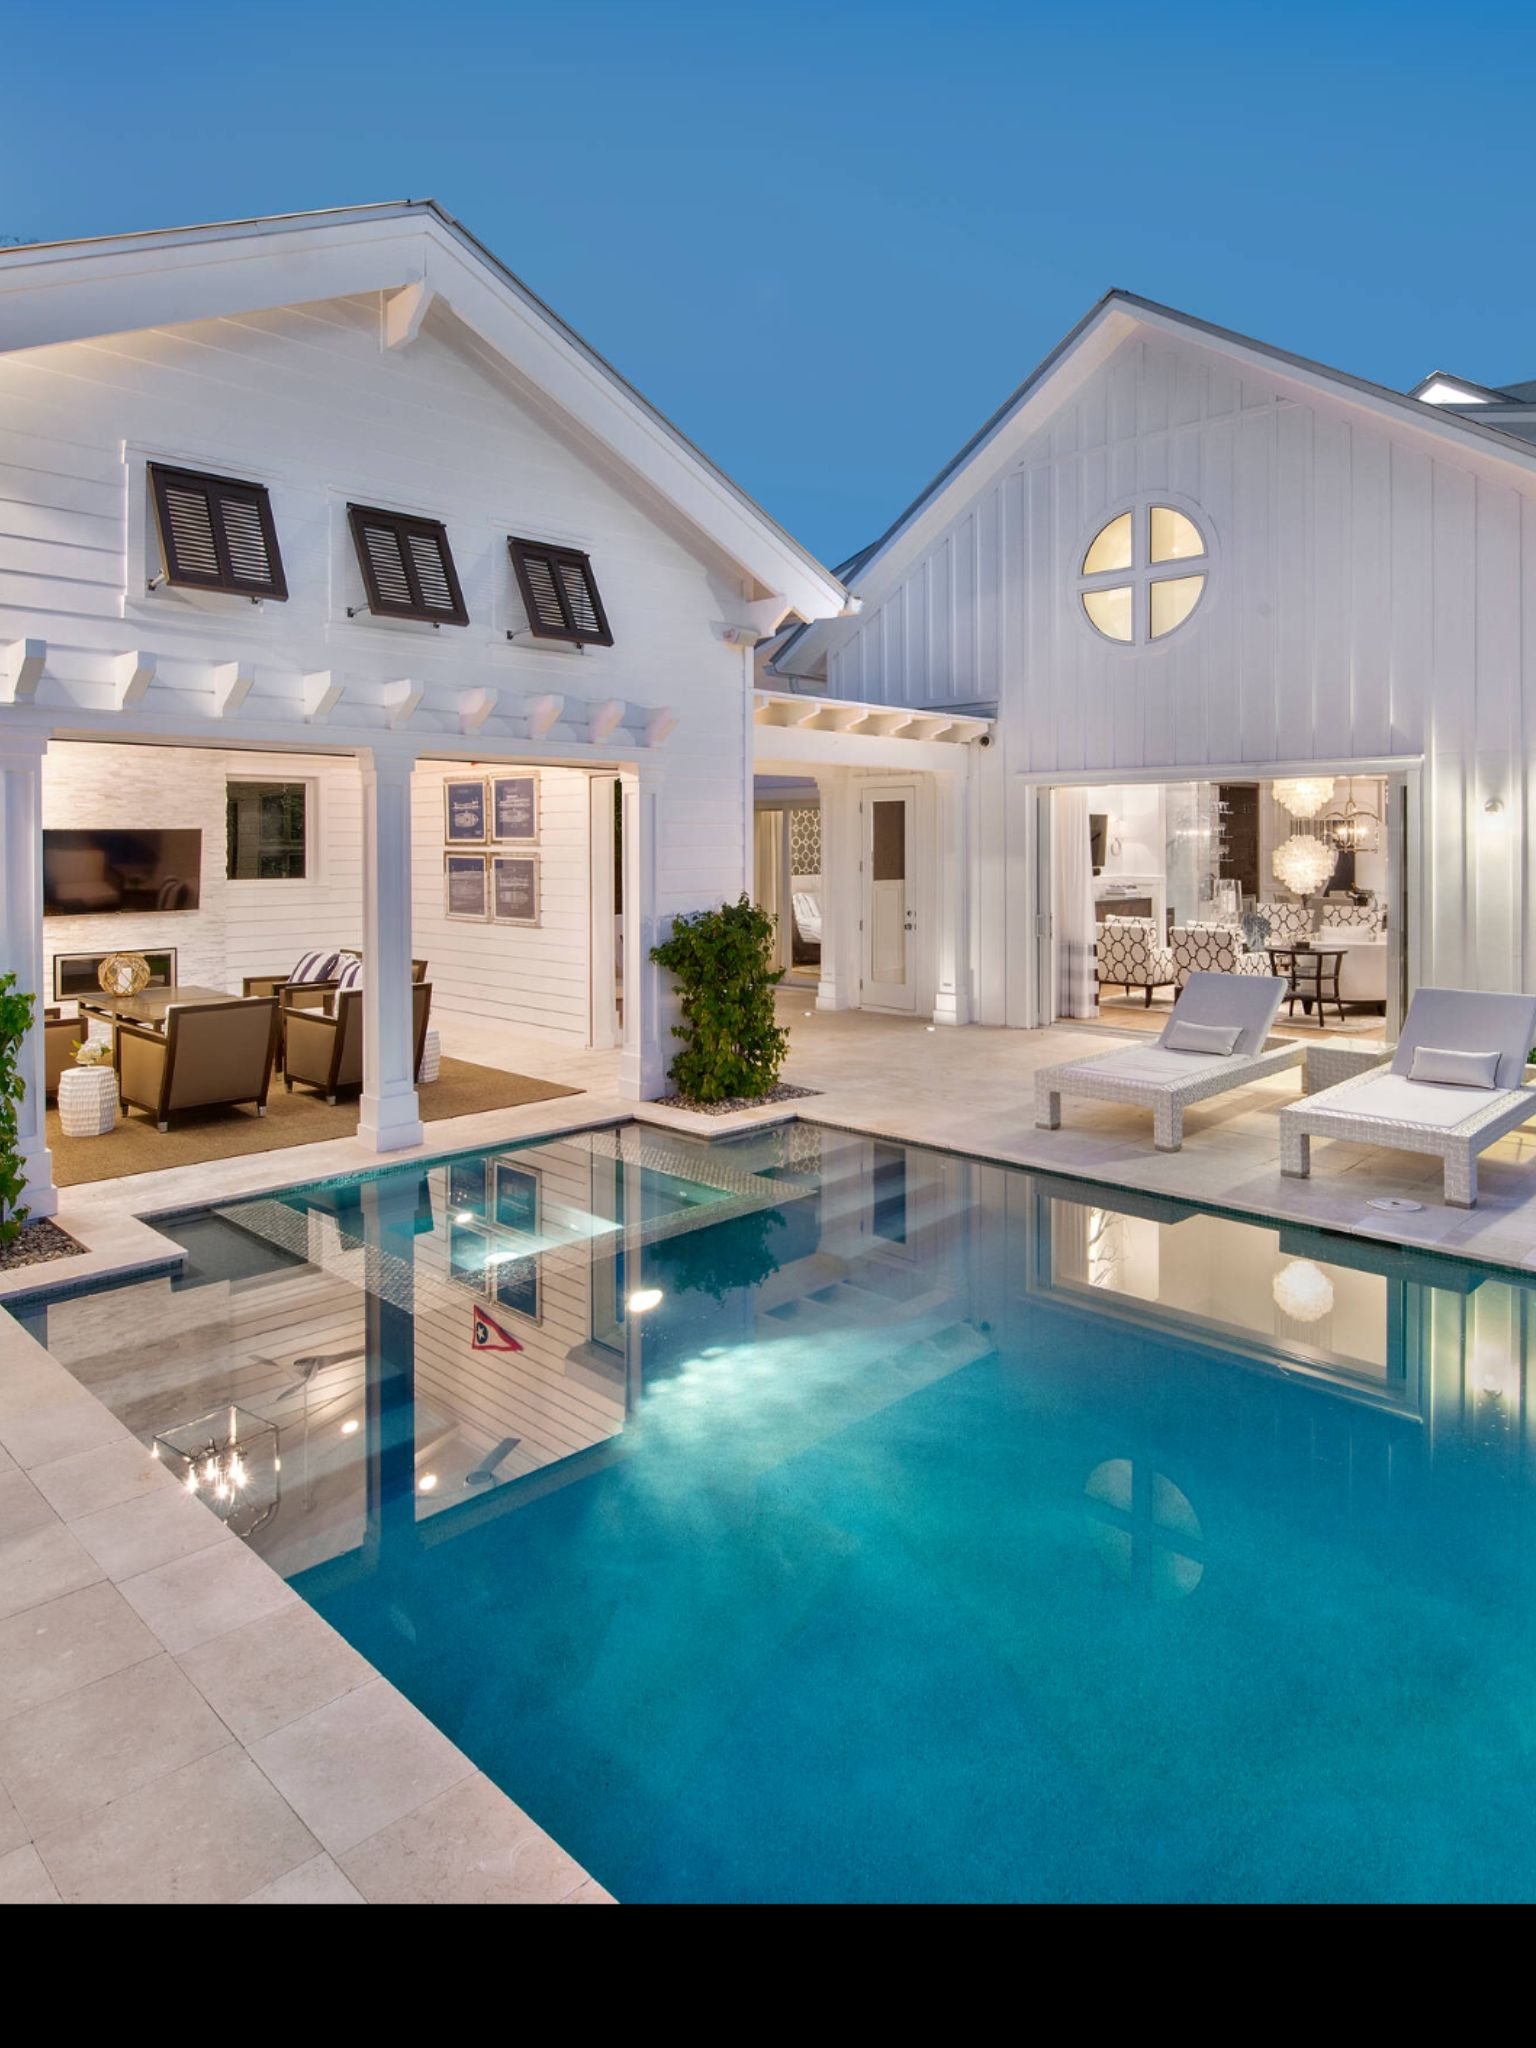 Pool and cabana my beach house pinterest cabana for Garage pool house